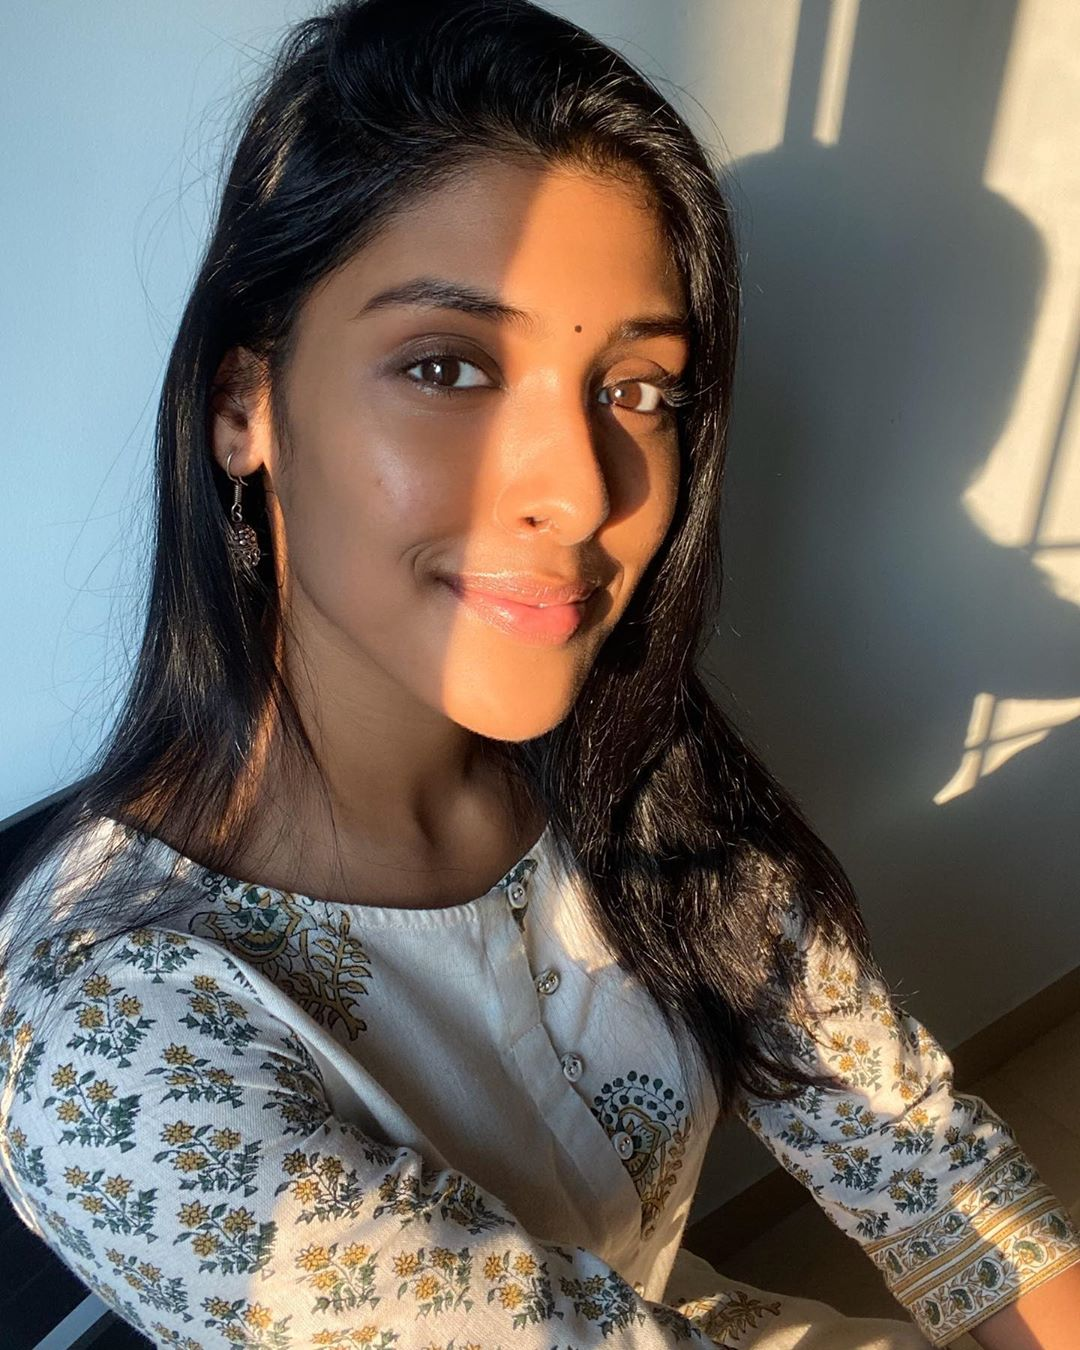 Gayathri Reddy (Actress) Wiki, Biography, Model, Age, Family, Images, Movies 1